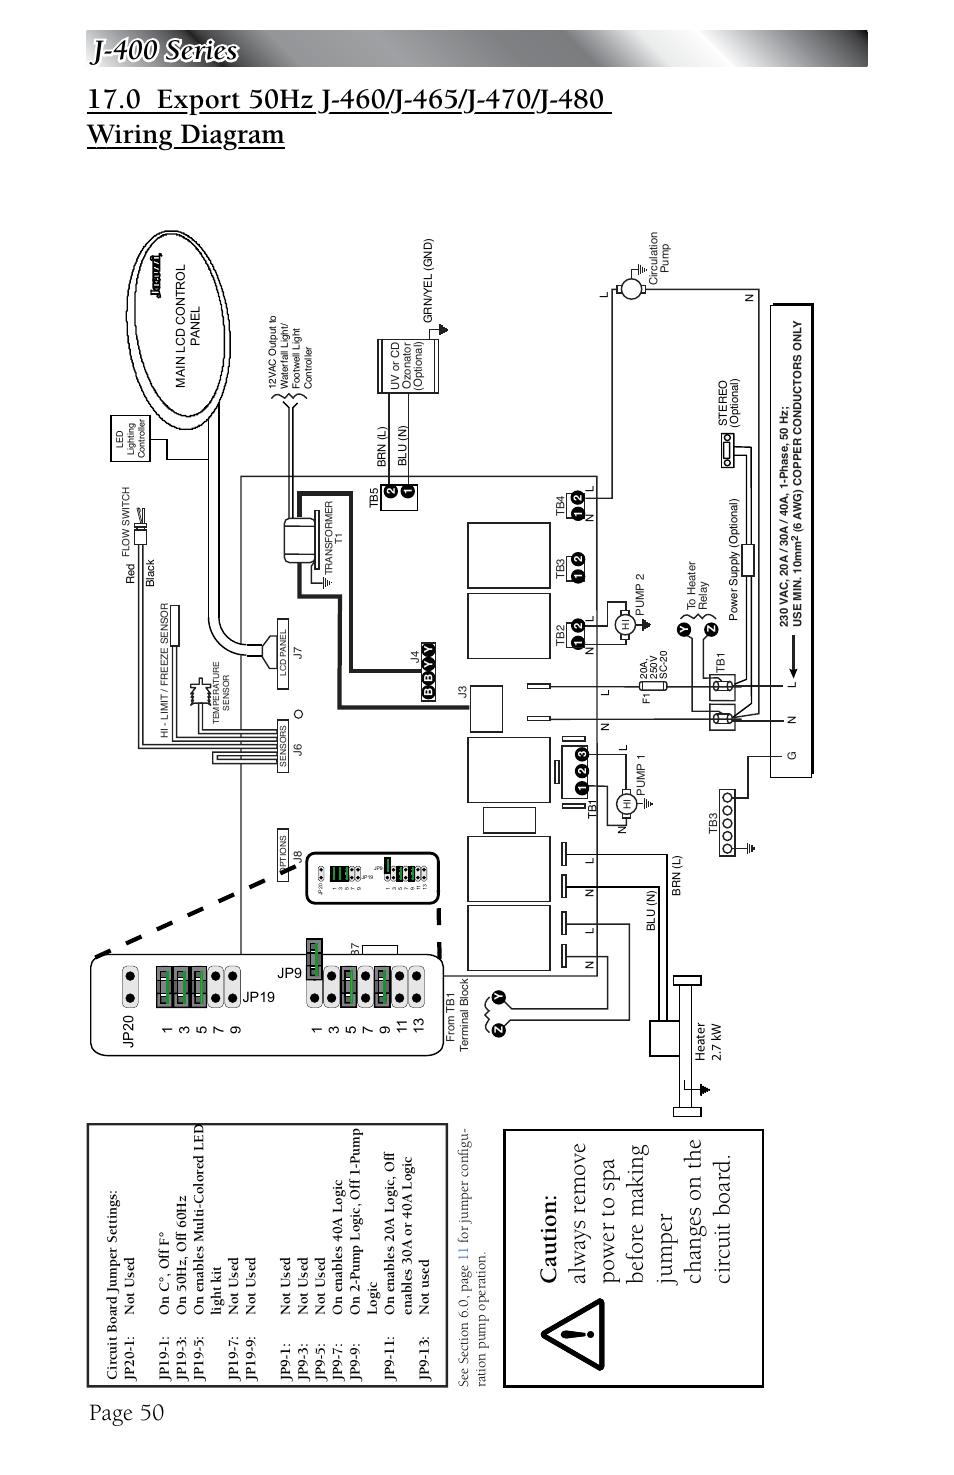 export 50hz j-460  j-465  j-470  j-480 wiring diagram  page 50